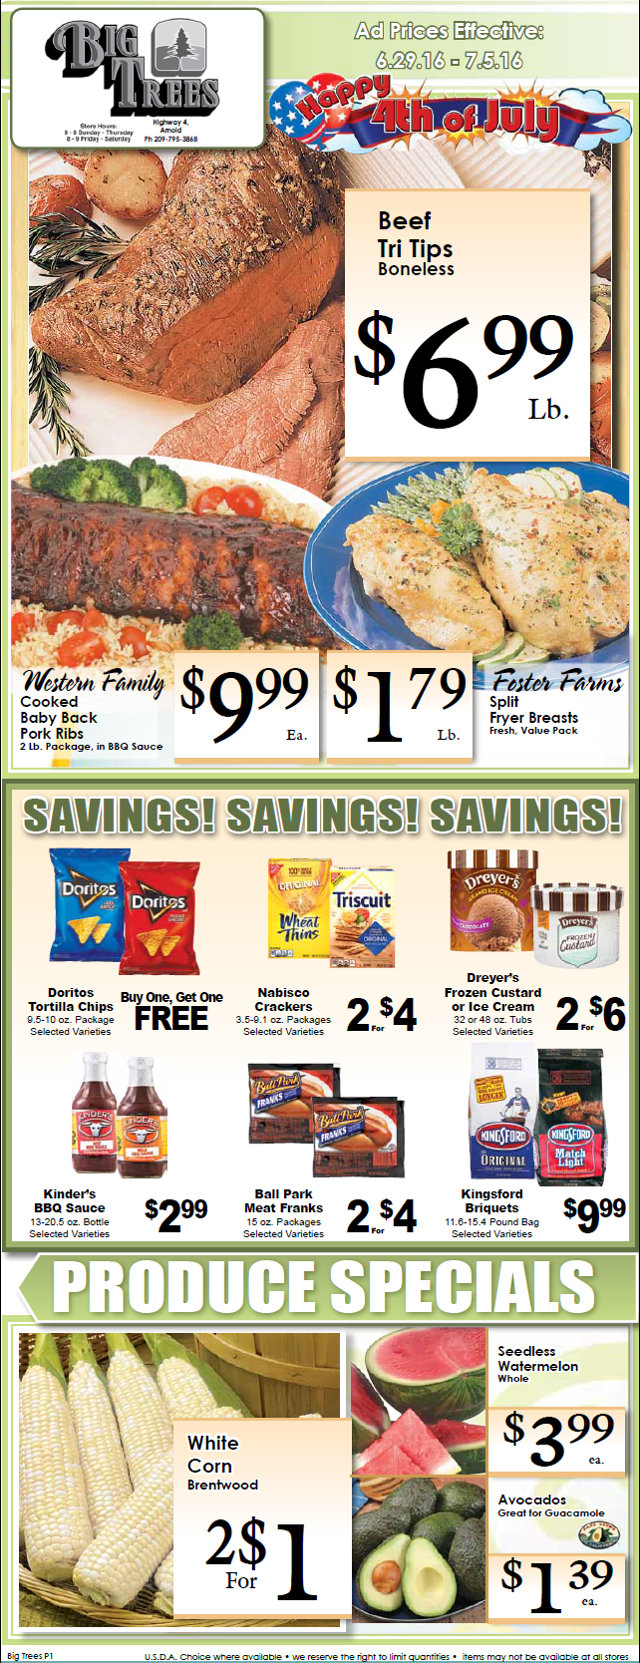 Big Trees Market Weekly Ad & Specials Through July 5th